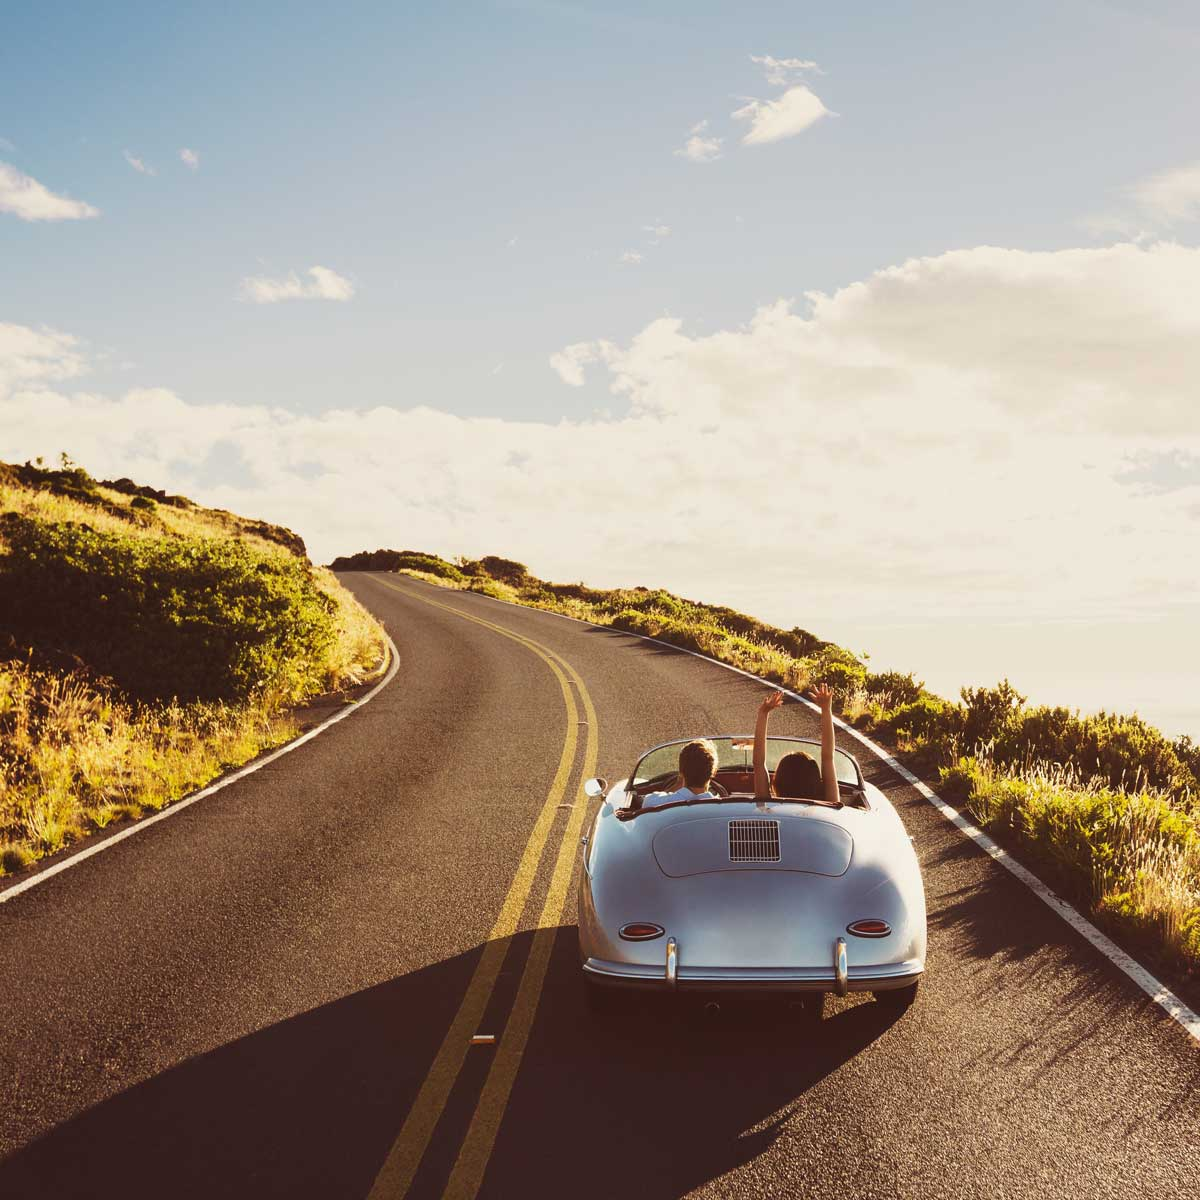 Coupe Driving on Country Road in Vintage Sports Car